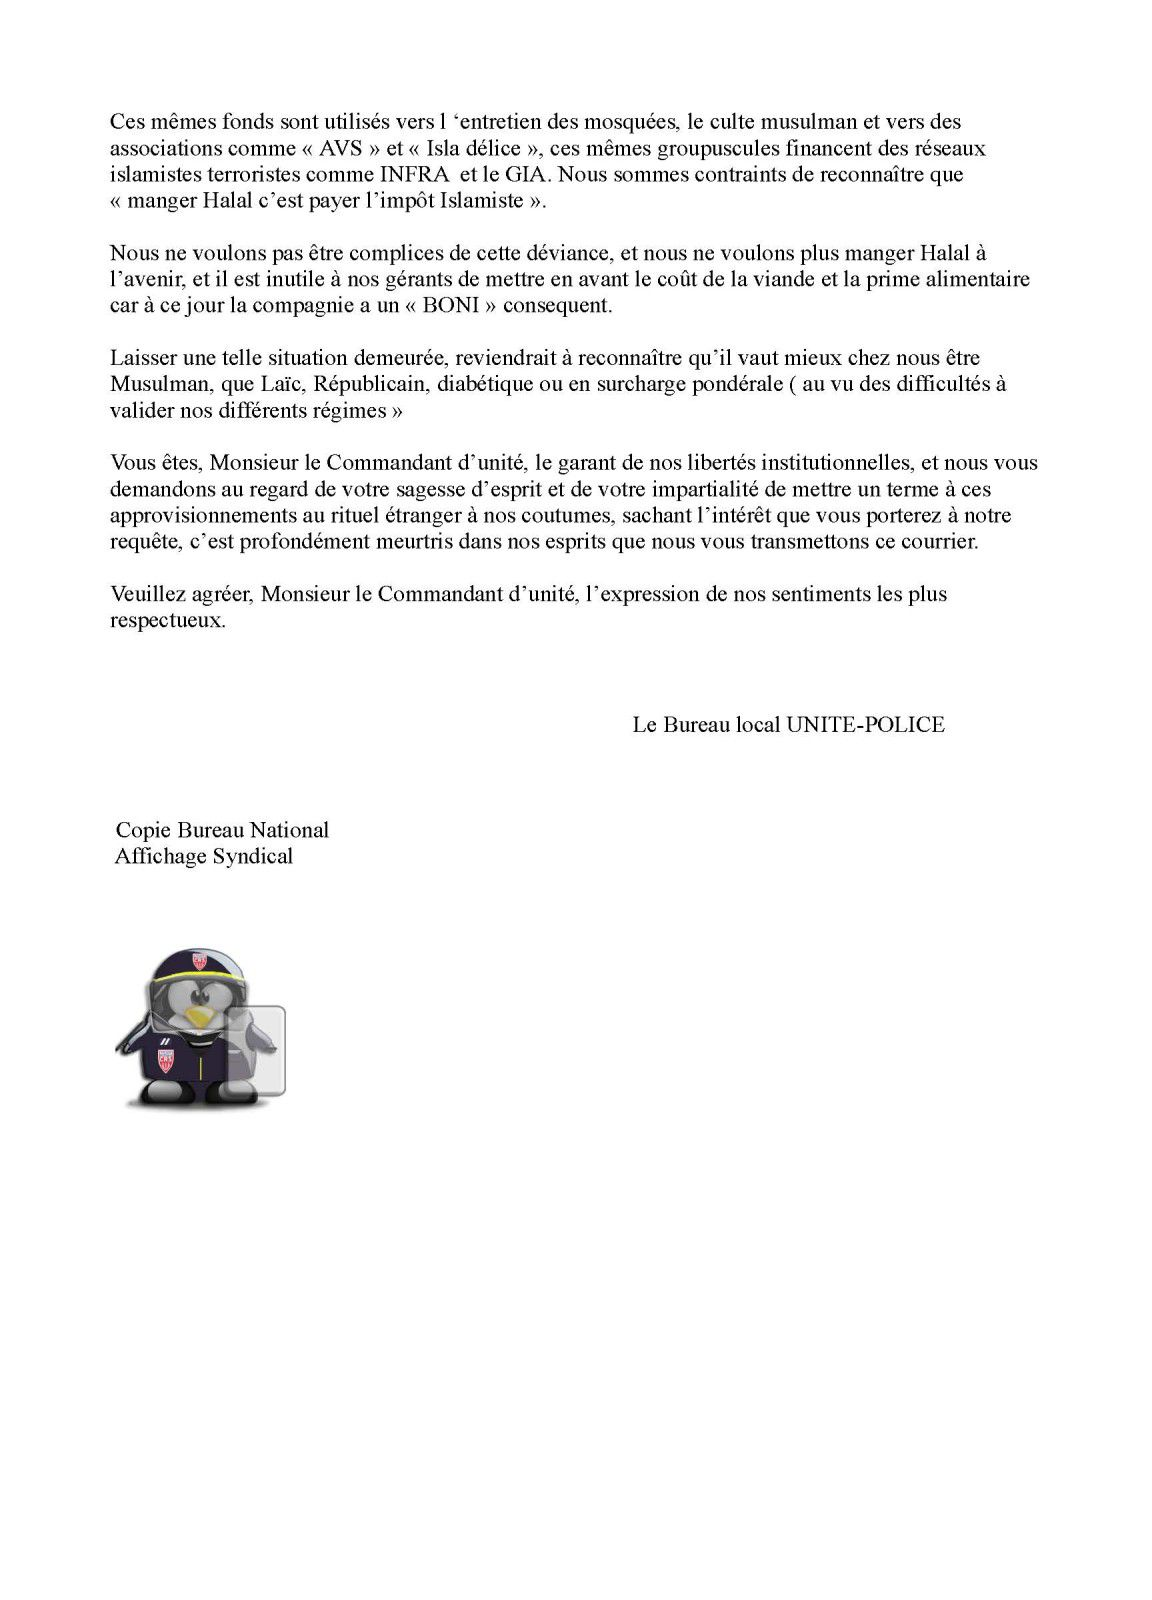 courrier_POLICE_NATIONALE-1-_Page_2.jpg